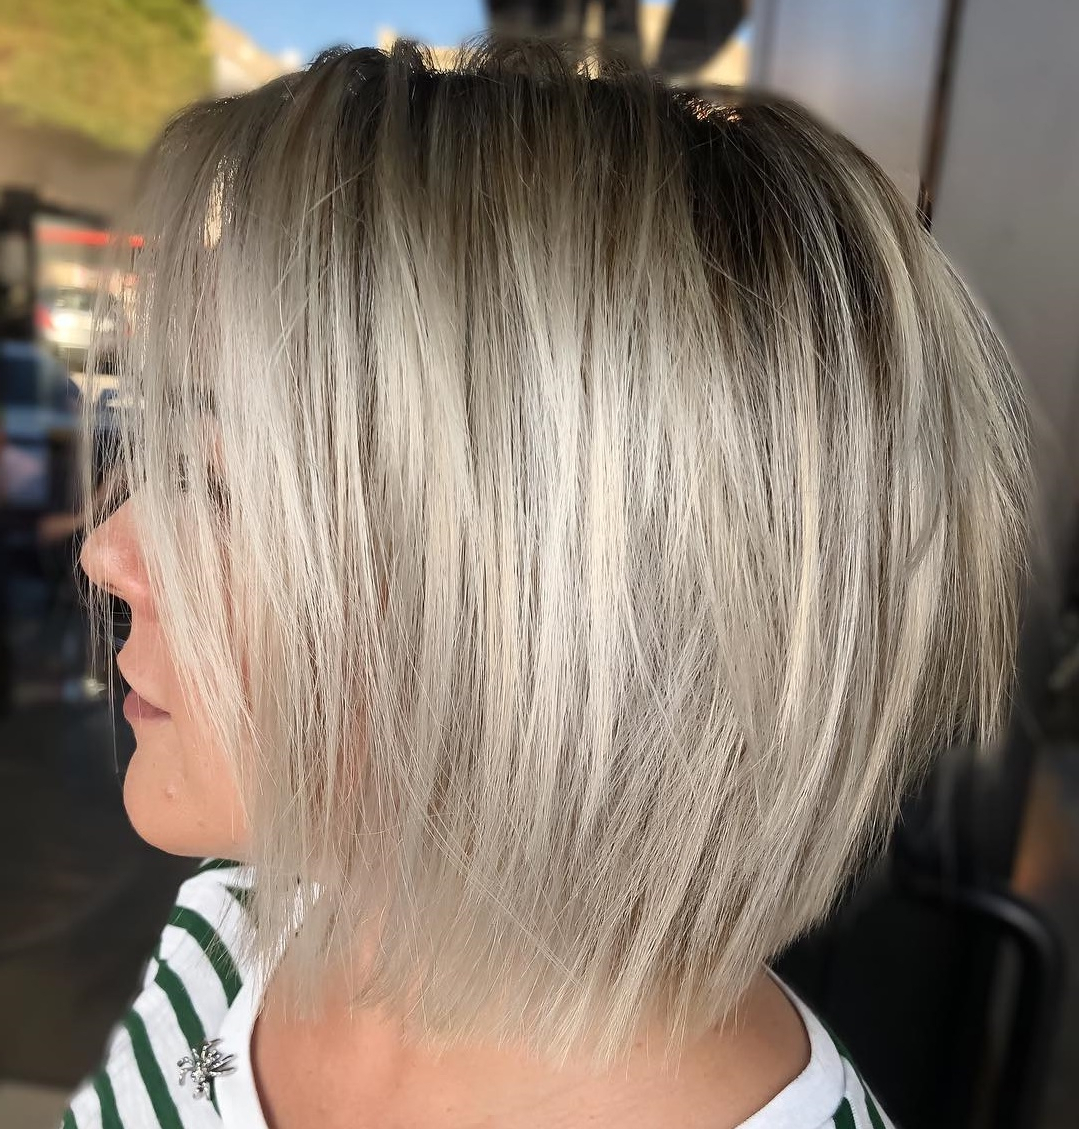 40 Awesome Ideas For Layered Bob Hairstyles You Can't Miss Within Razored Two Layer Bob Hairstyles For Thick Hair (View 8 of 20)